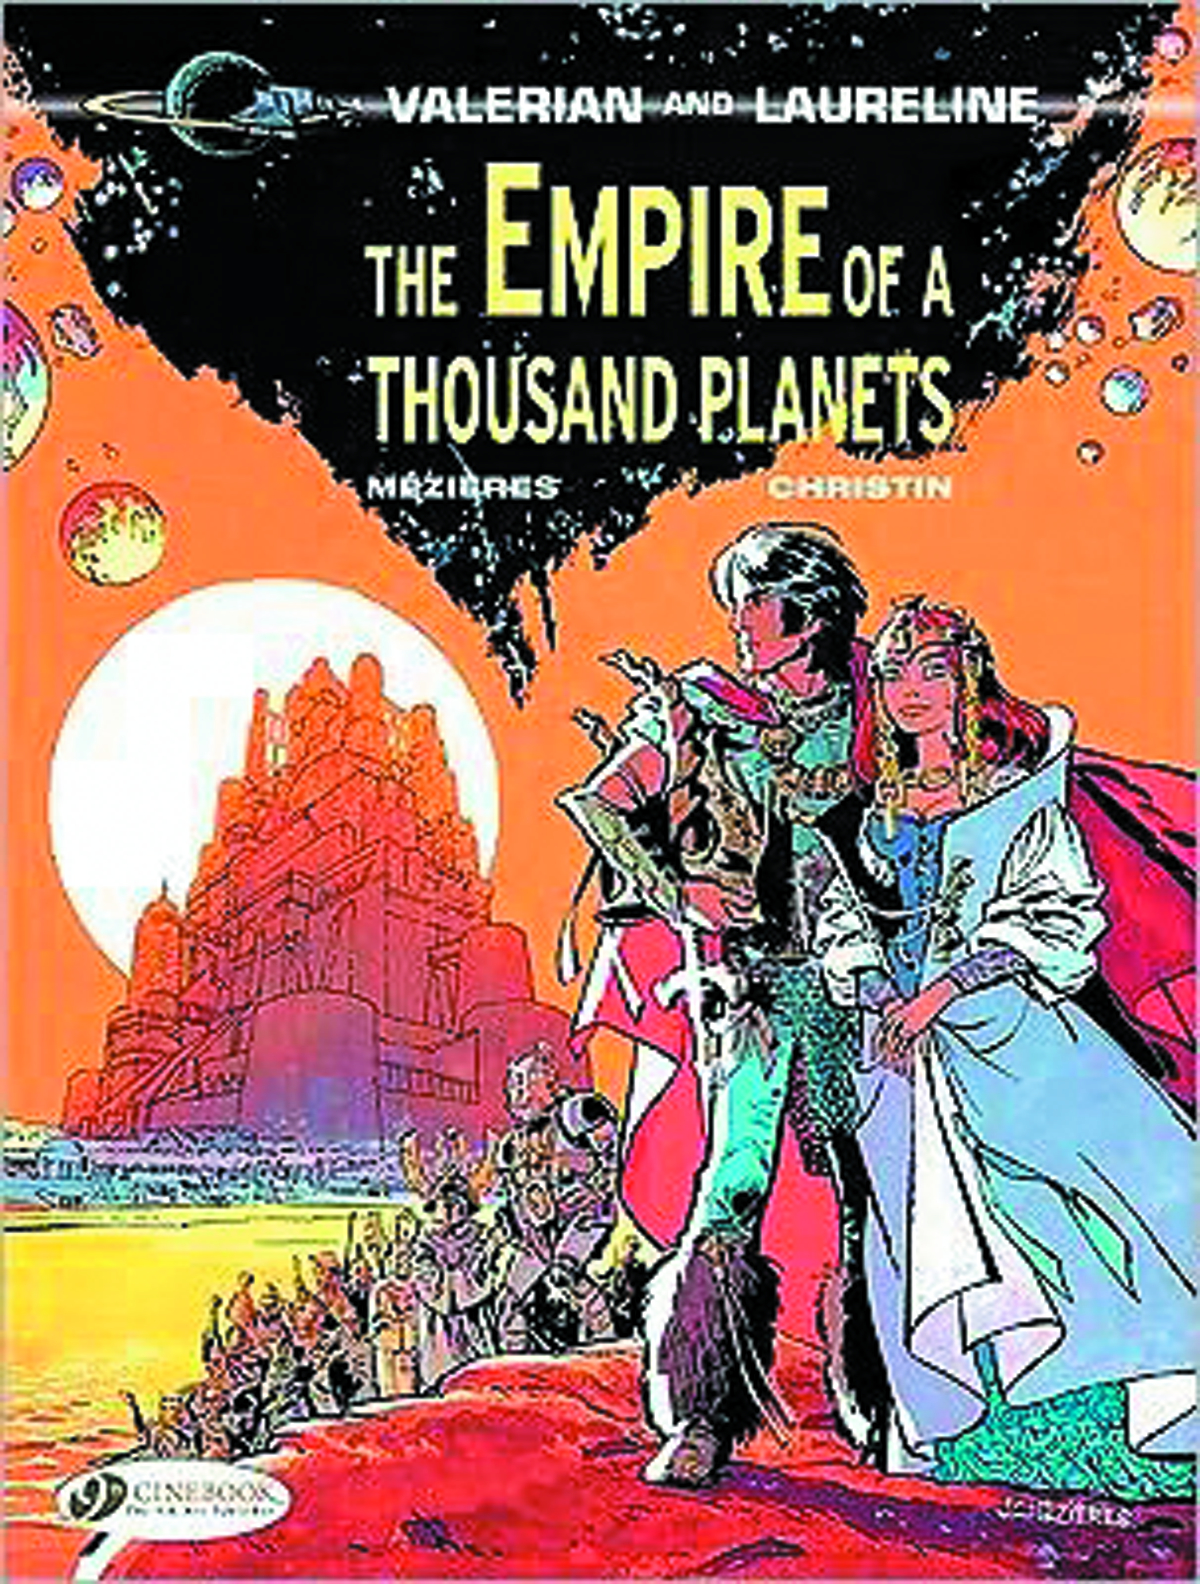 VALERIAN GN VOL 02 EMPIRE OF THOUSAND PLANETS